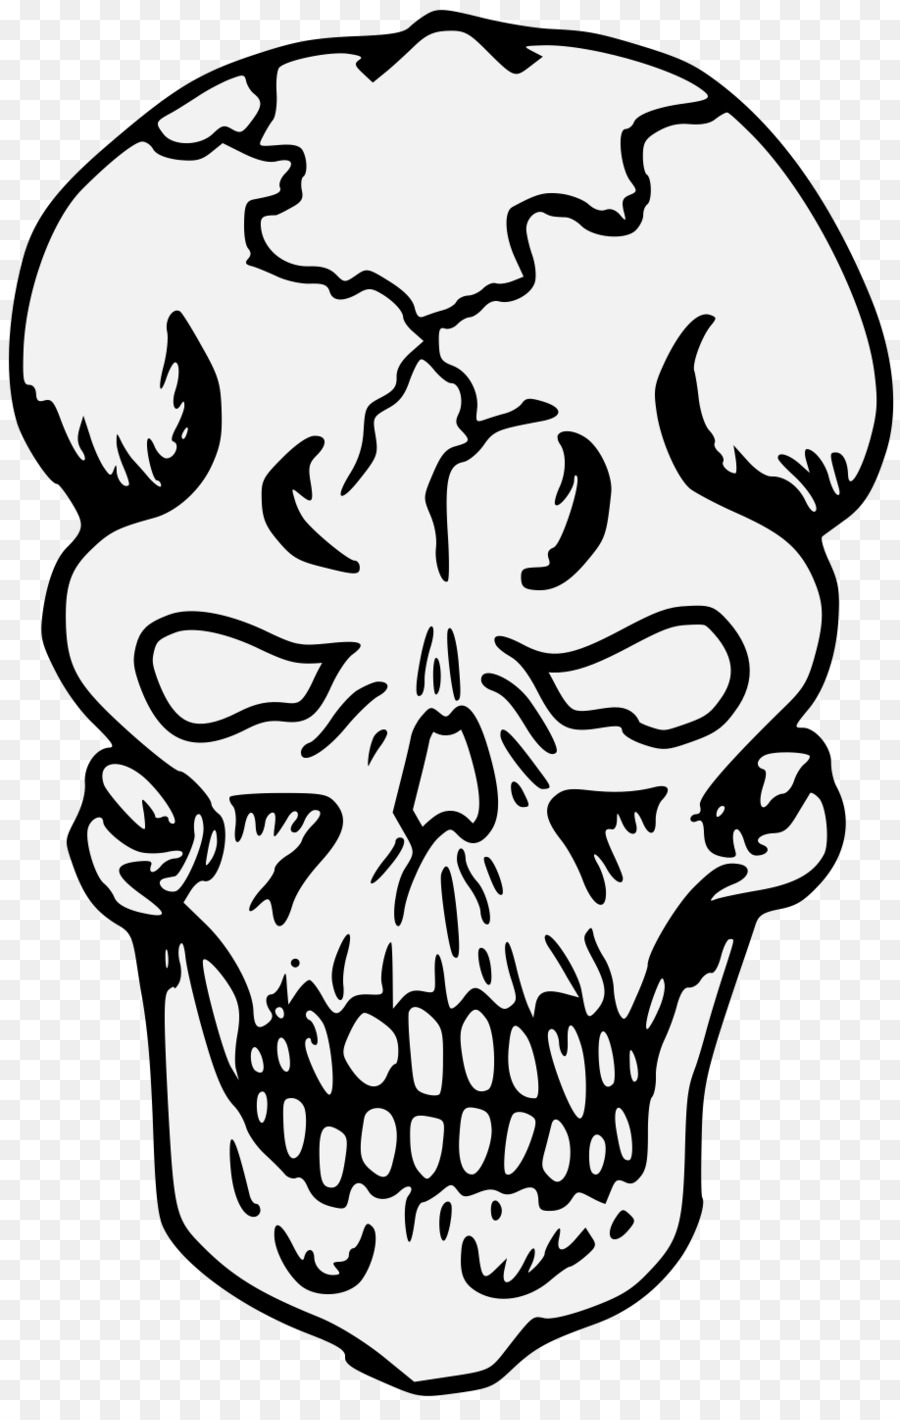 Skull Cartoon